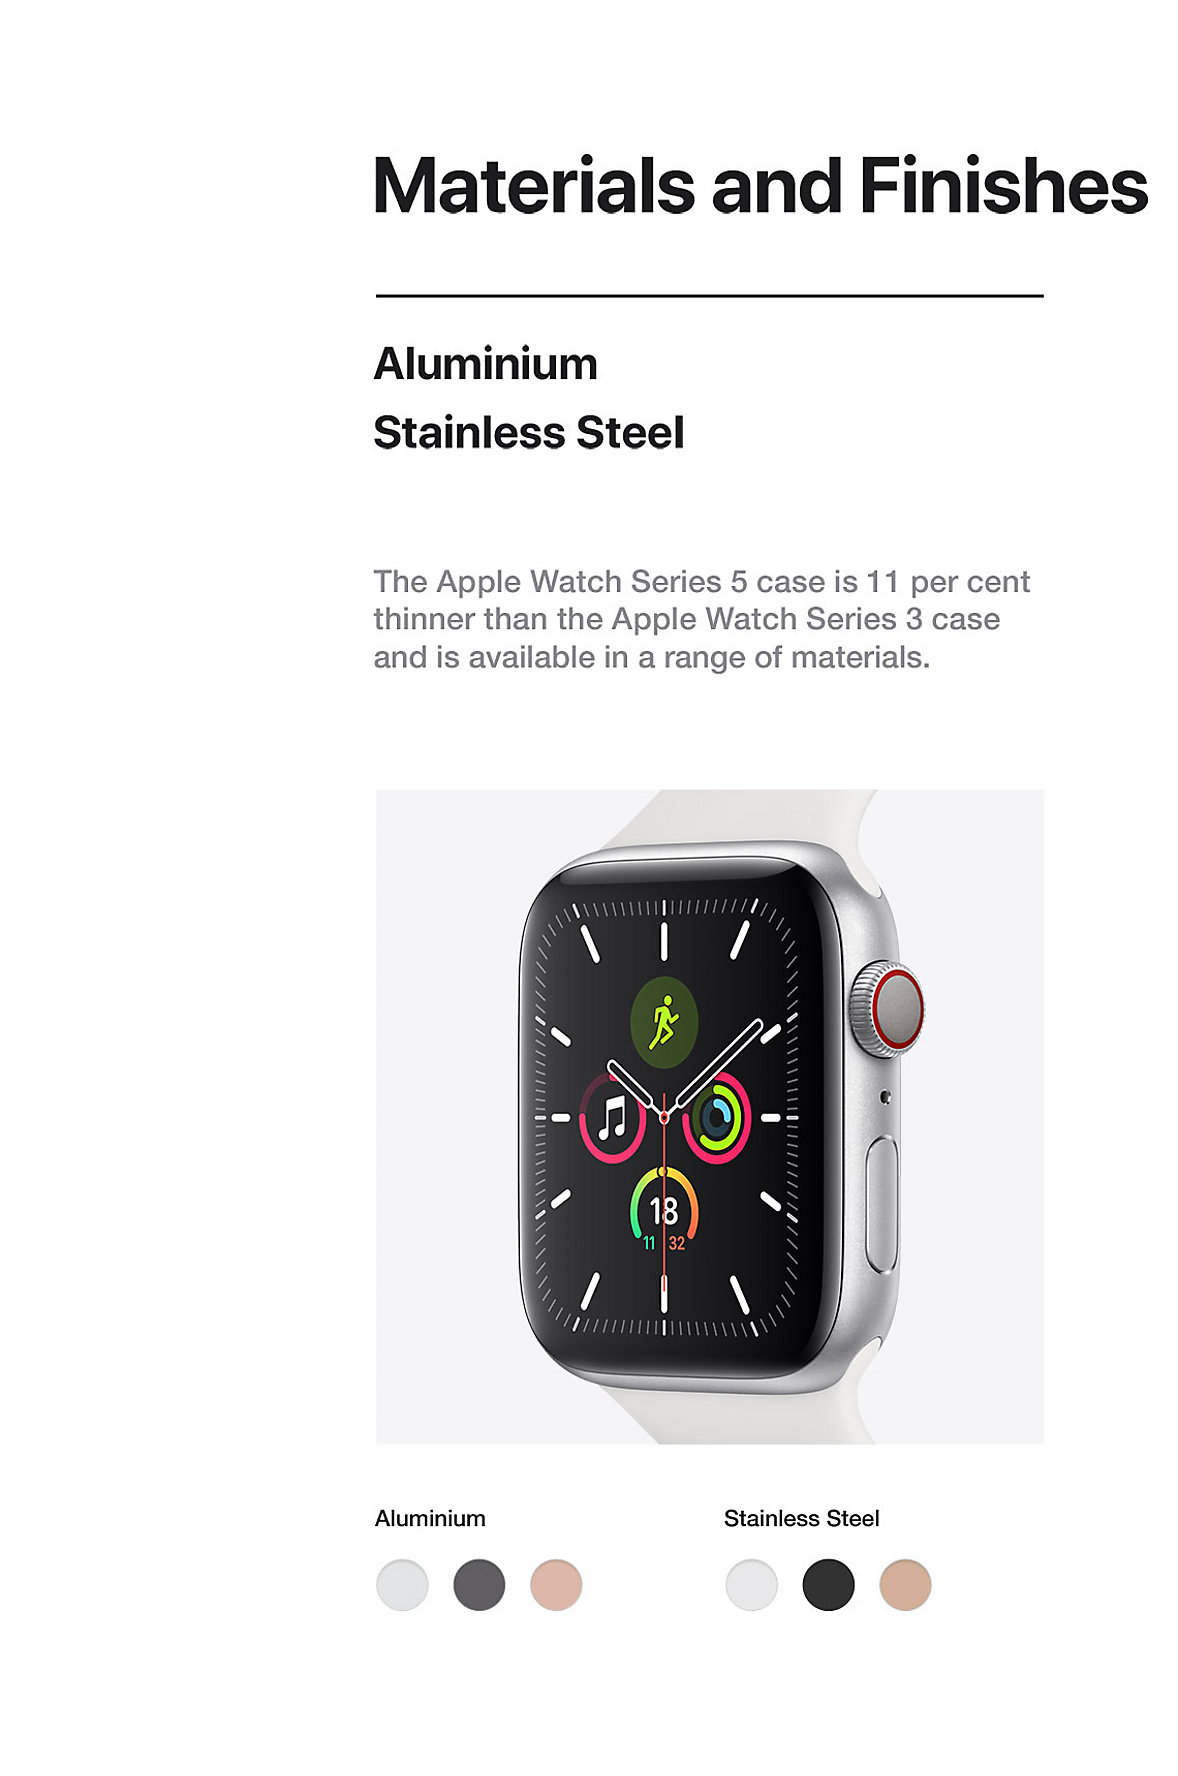 Apple Watch Materials and Finishes Series 5